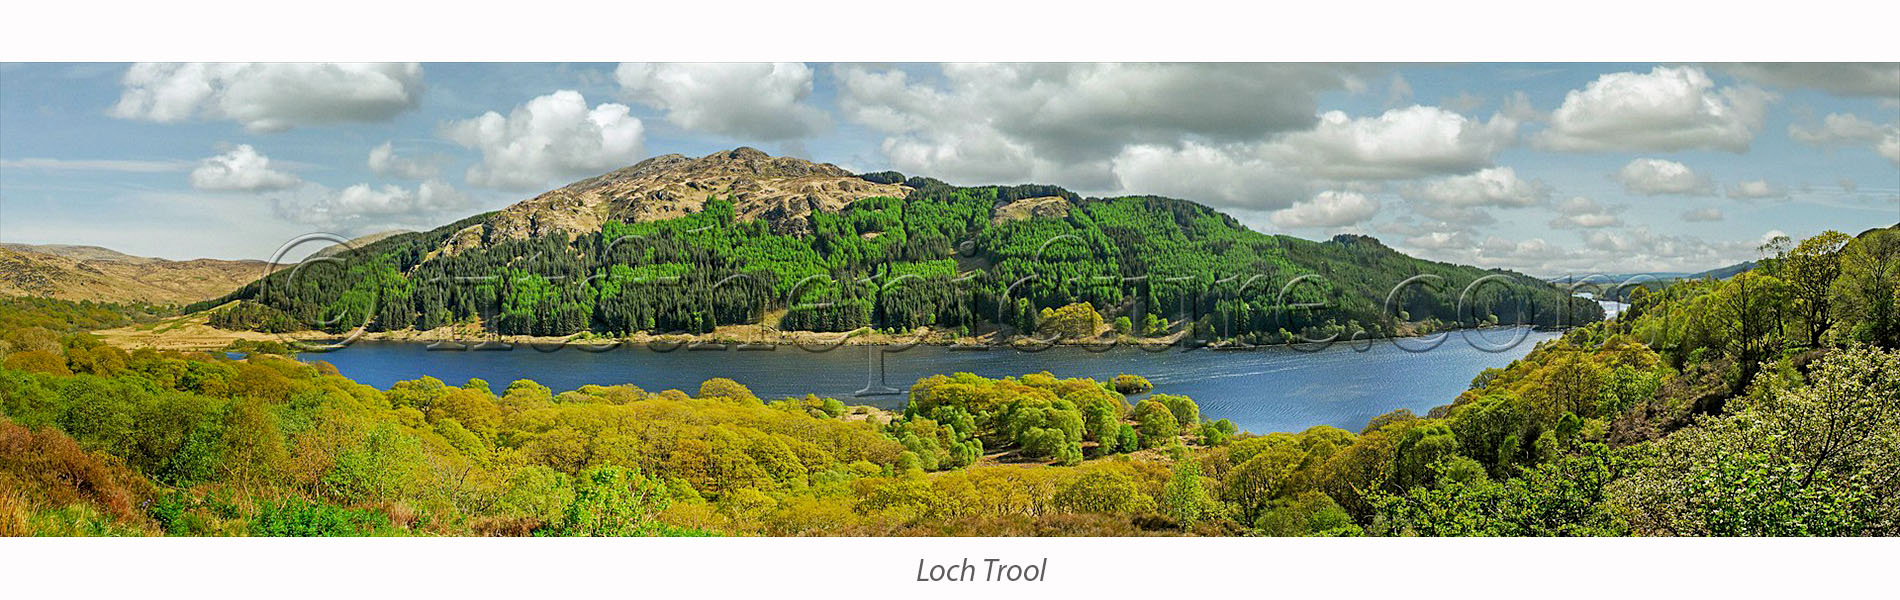 loch_trool.jpg